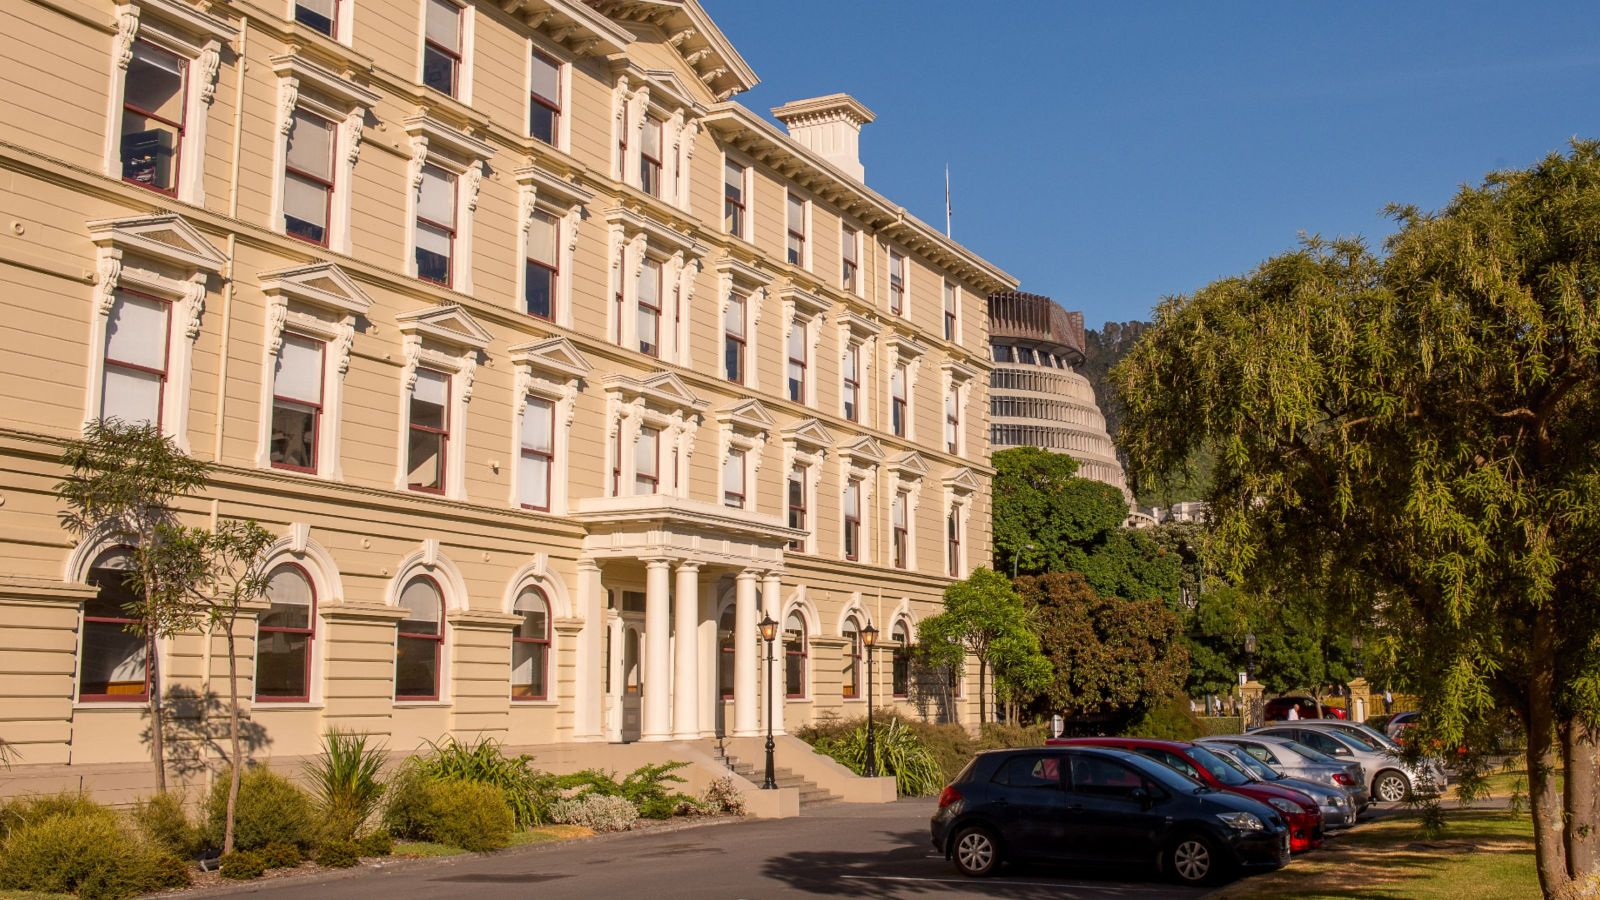 Old government building with beehive in background